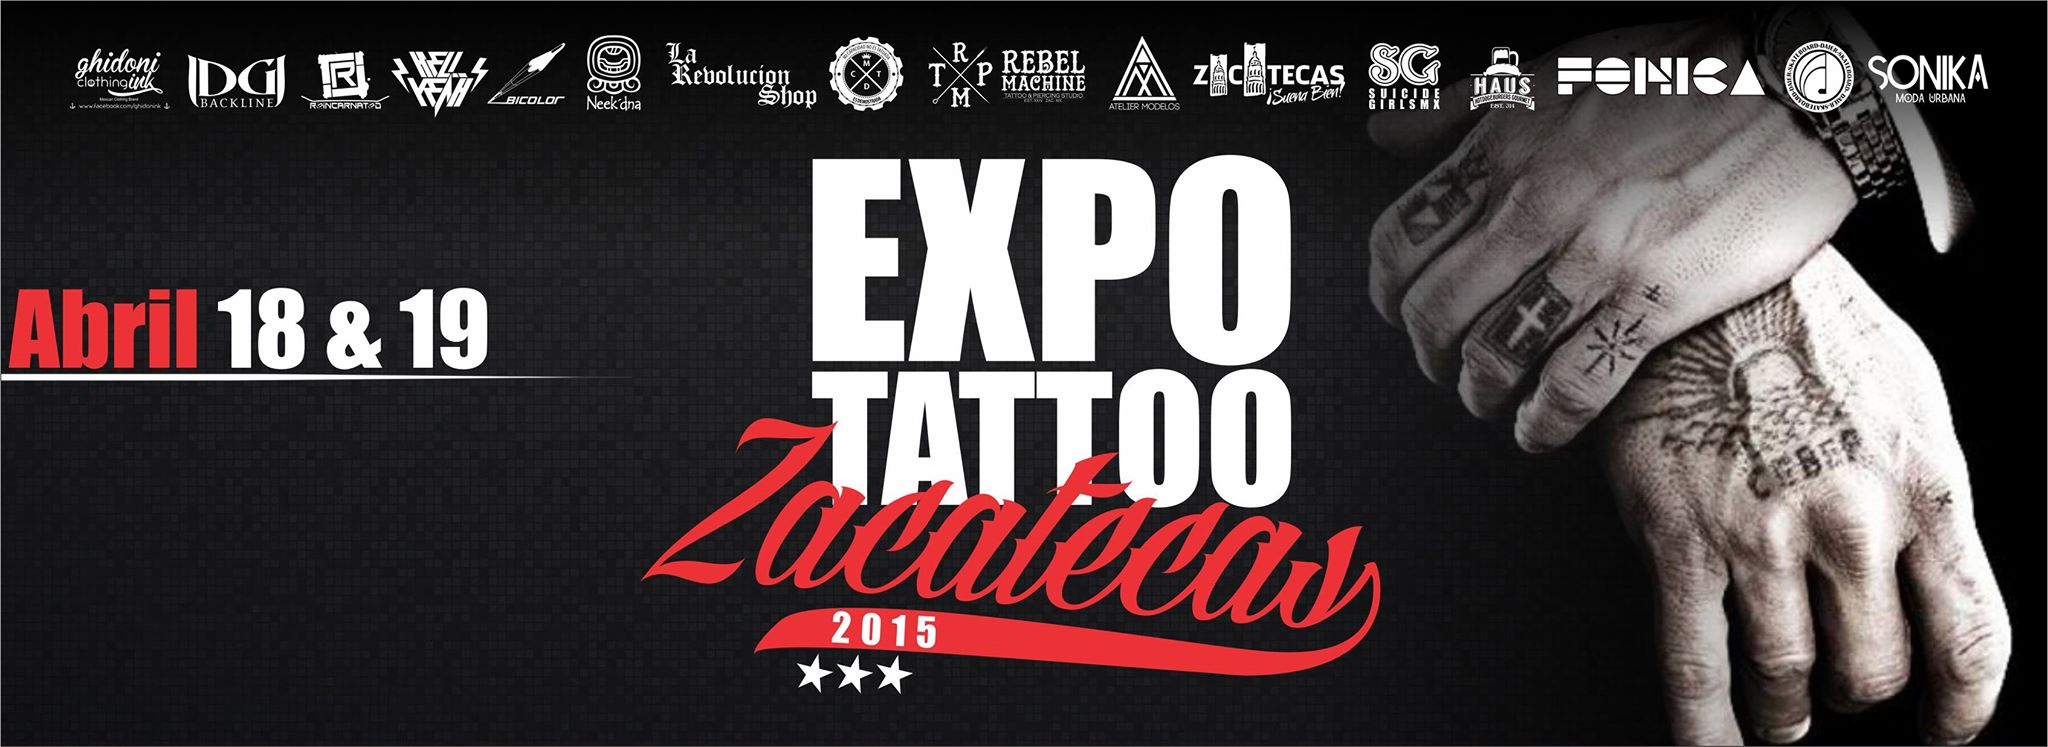 Expo Tattoo & Piercing Zacatecas 2015